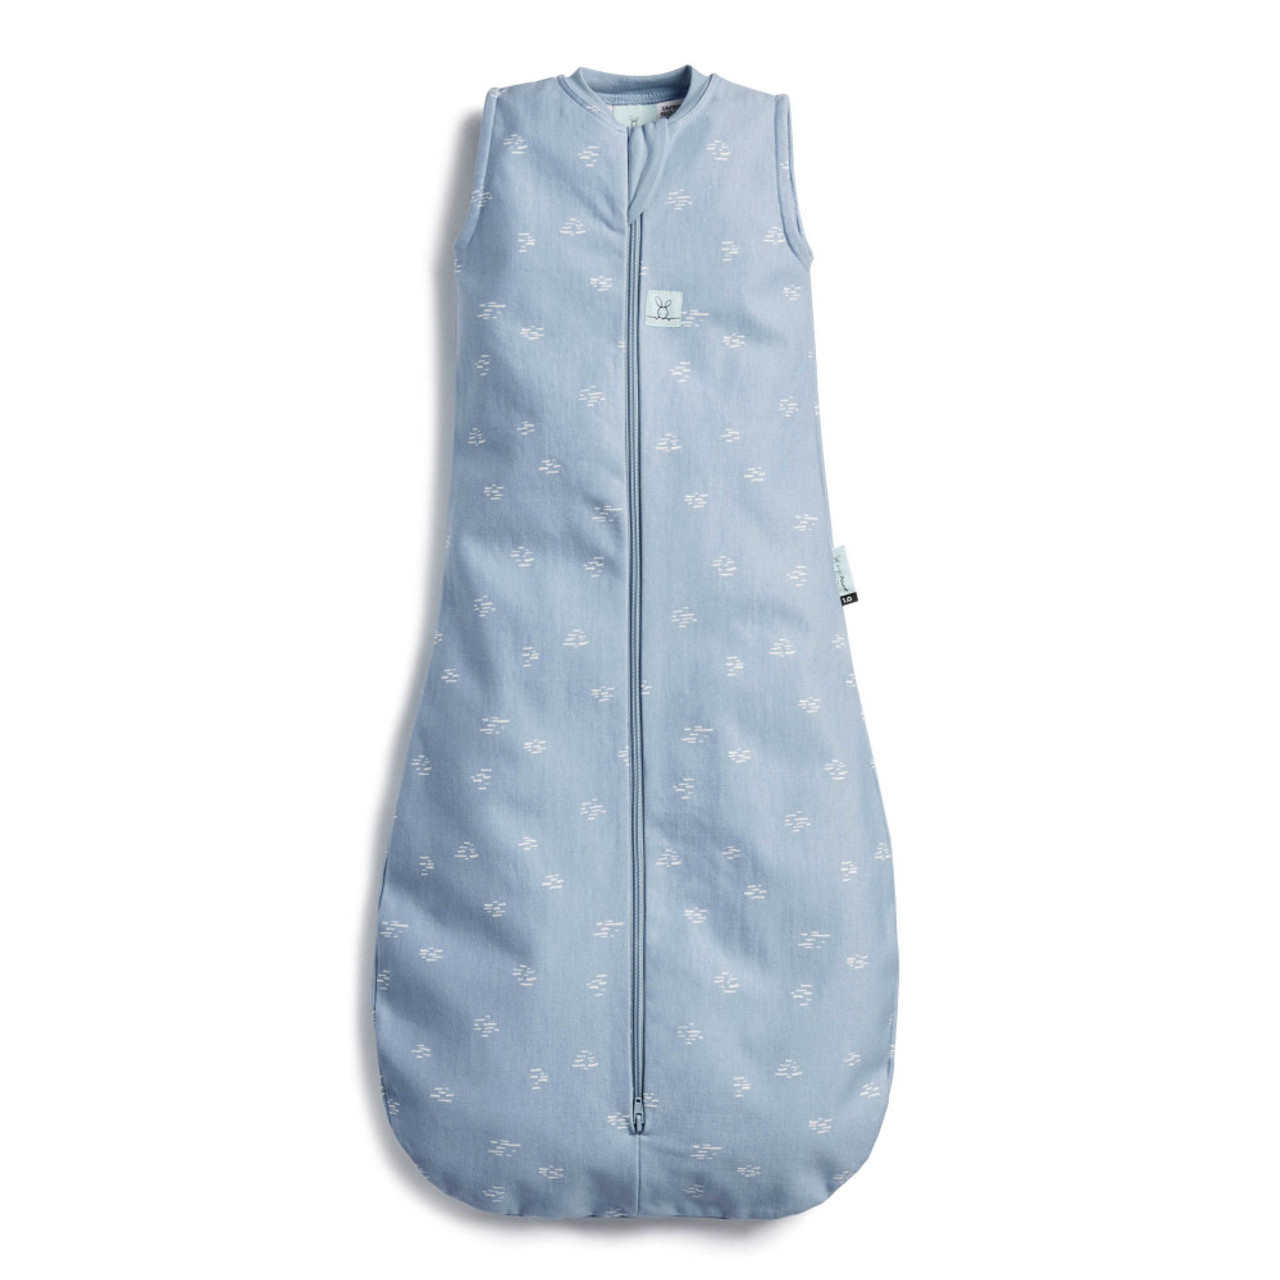 ergoPouch Jersey Sleeping Bag 0.2 TOG Ripple 8-24 months at Baby Barn Discounts